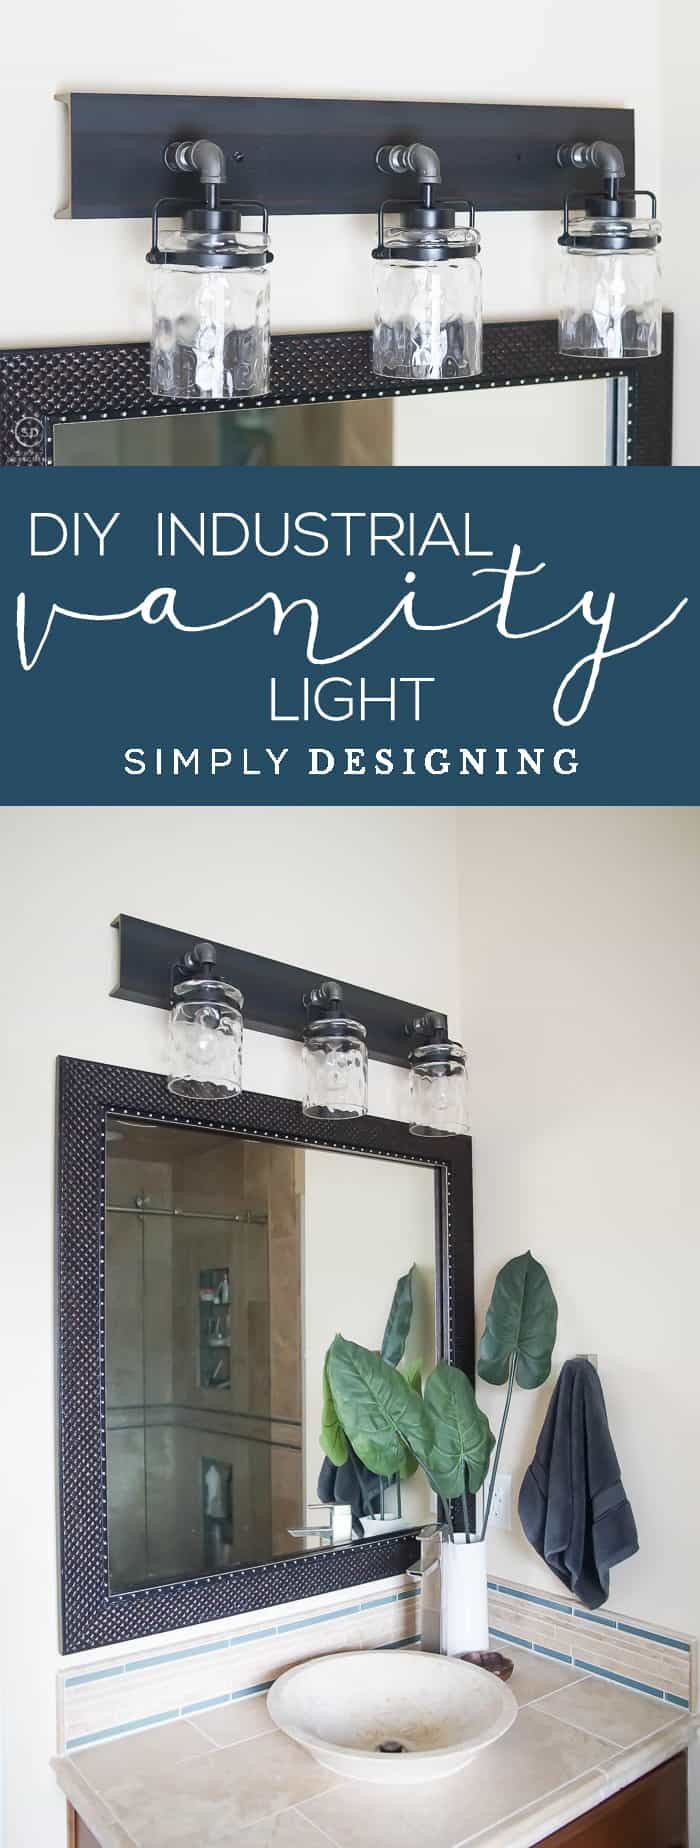 Industrial DIY Vanity Light - this amazing vanity light is easy to make and makes a beautiful statement in your bathroom - DIY Industrial Light